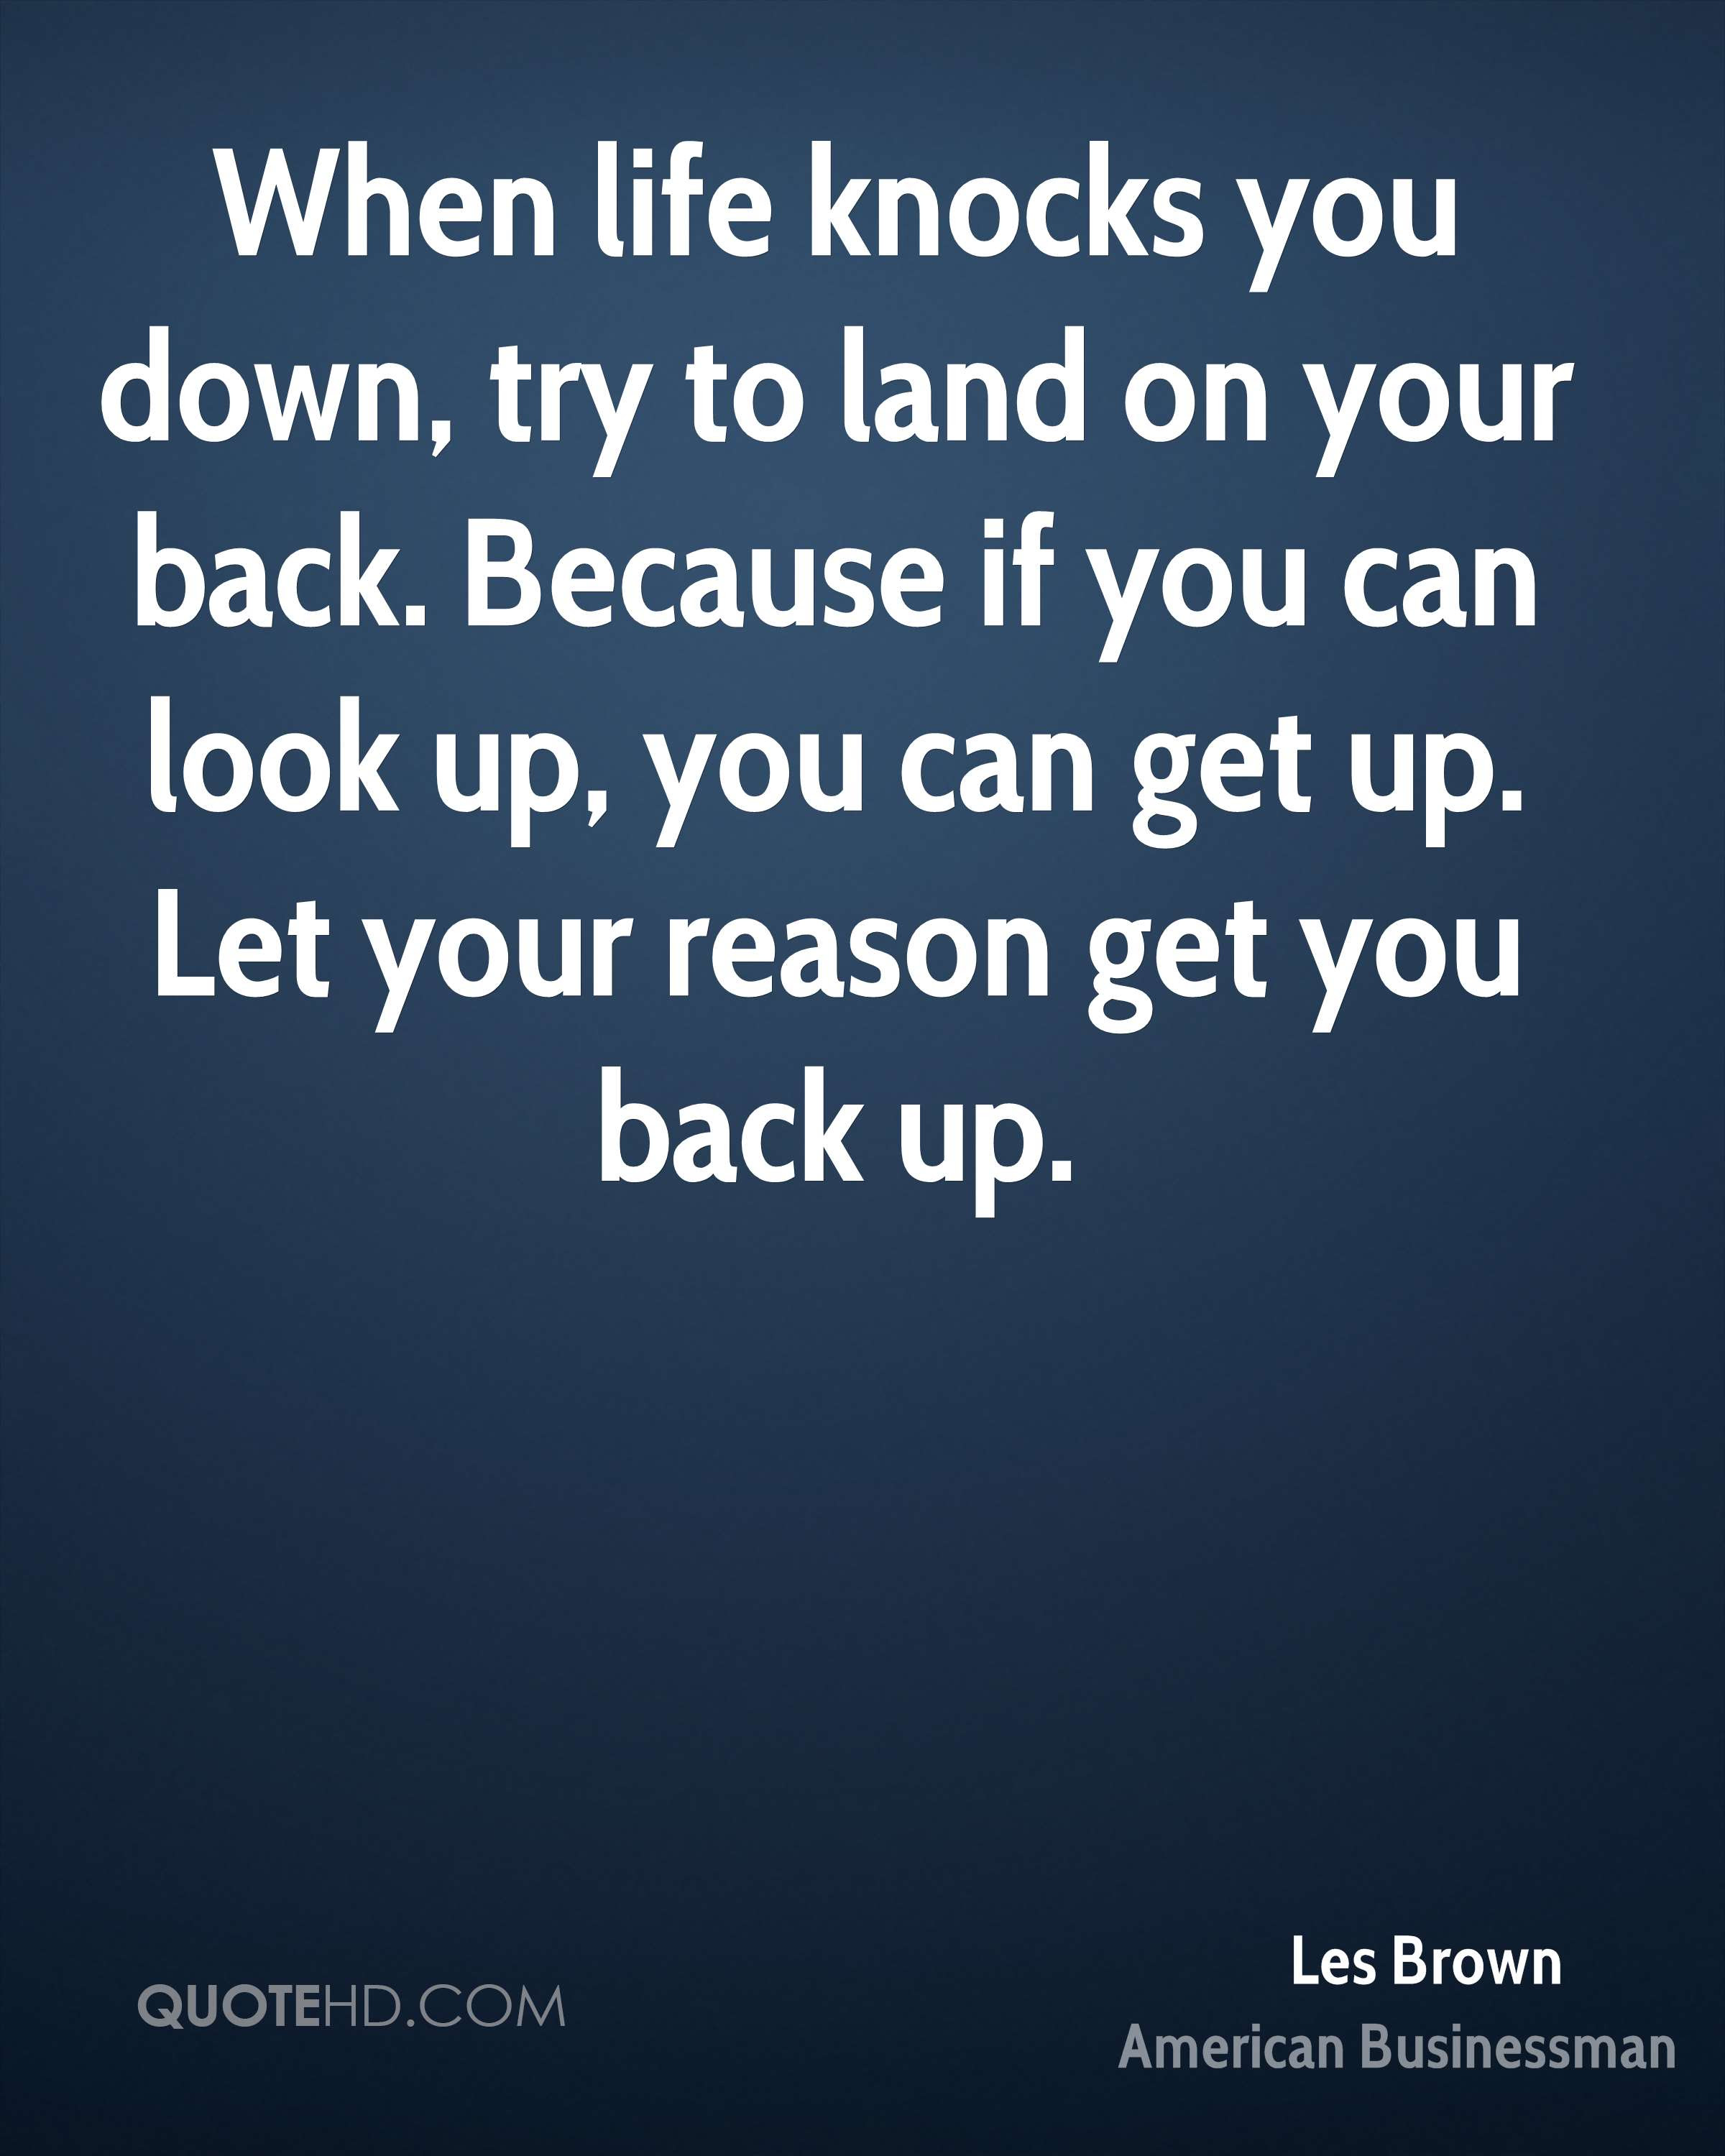 Les Brown Life Quotes Quotehd